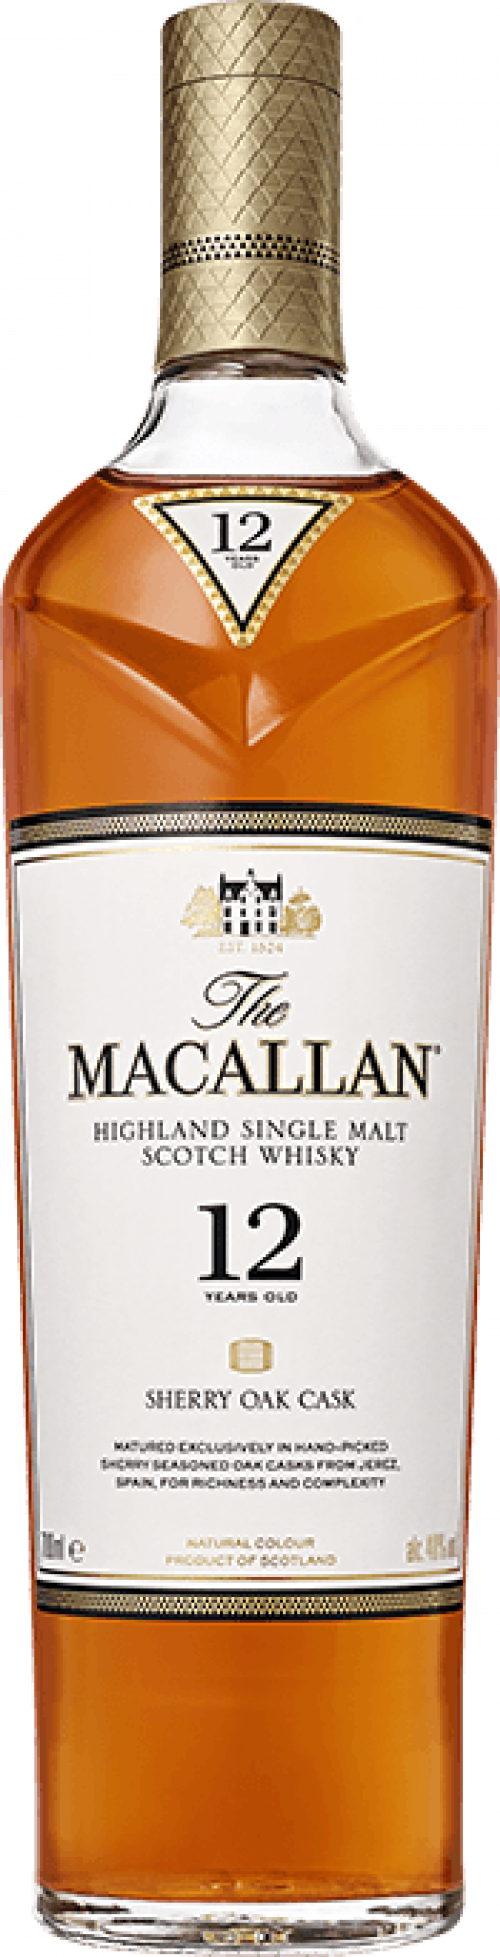 MaCallan Double Cask 12Yr Scotch Whisky 750Ml